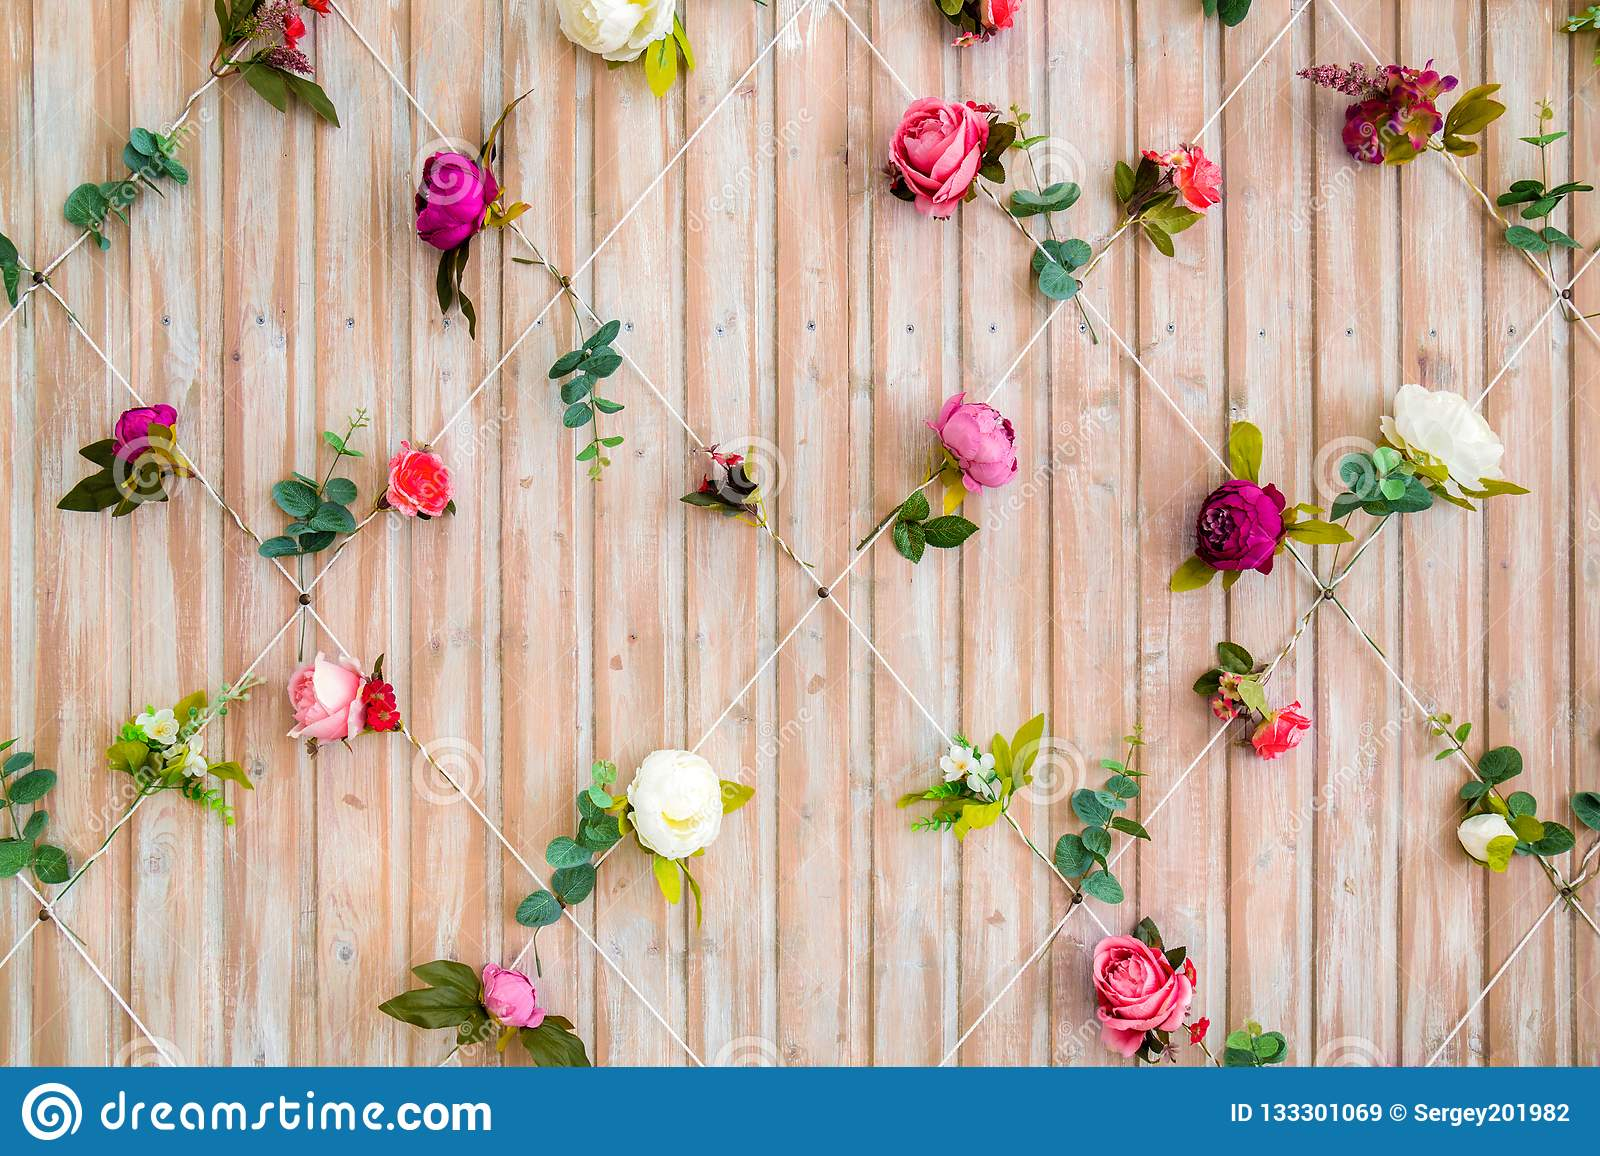 Wall of wooden boards decorated with flowers. Beautiful background for photo studio